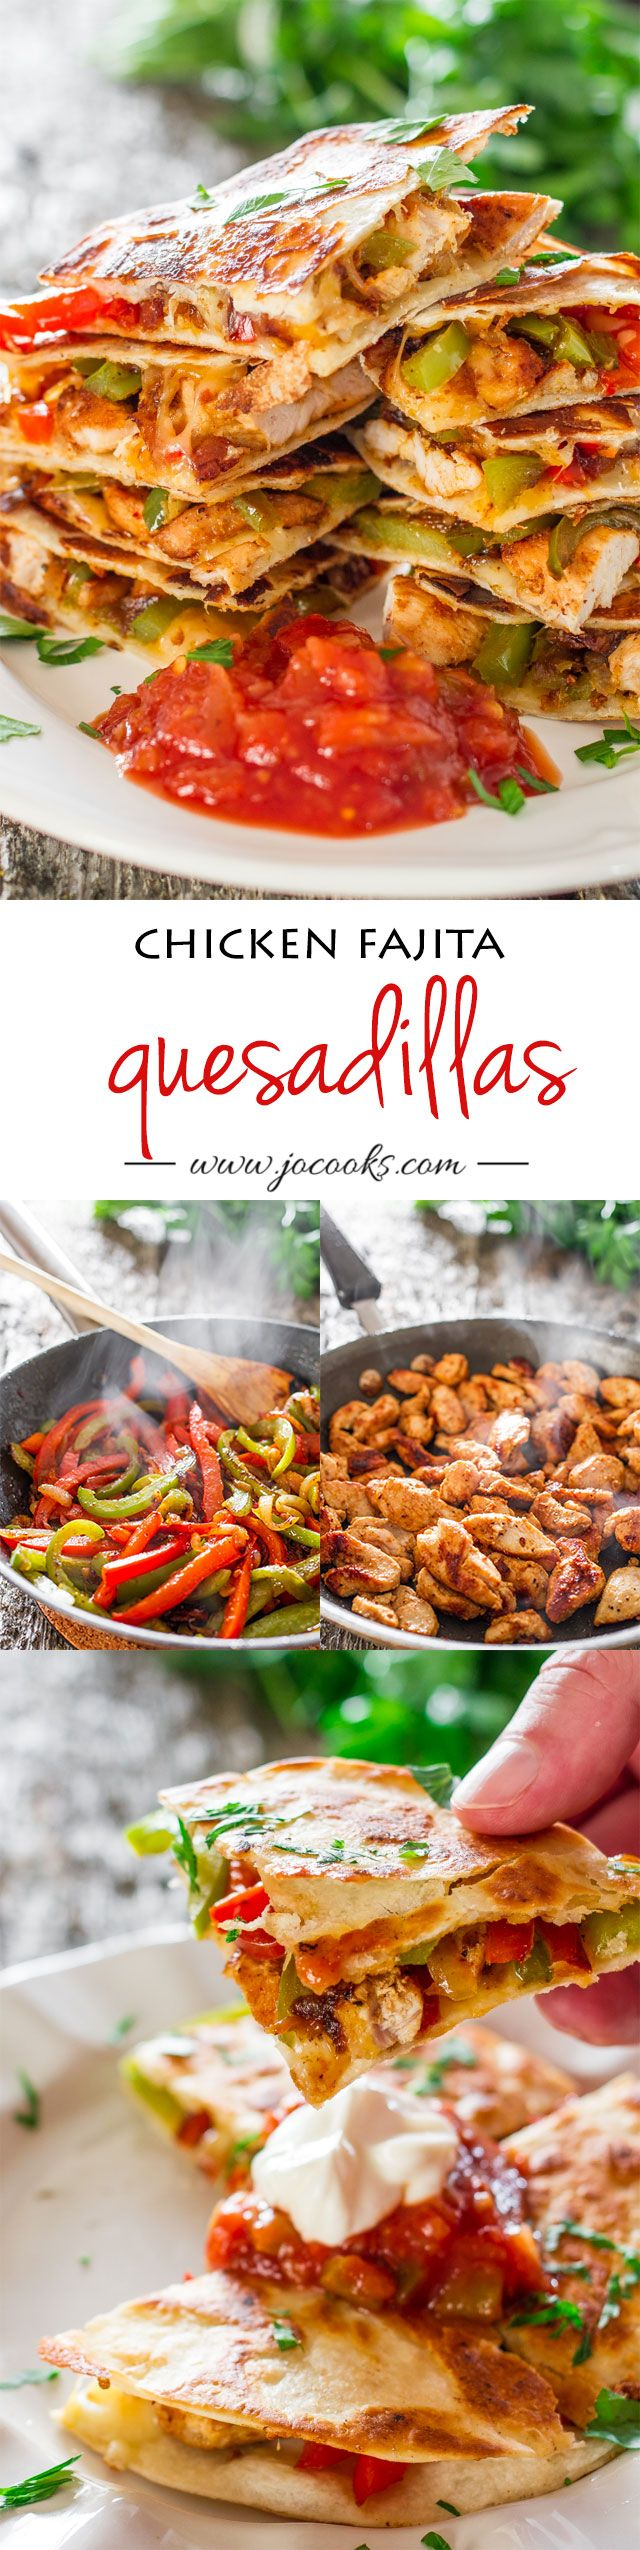 Chicken Fajita Quesadillas - sauteed onions, red and green peppers, perfectly seasoned chicken breast, melted cheese, between two tortillas. Simply yummy. Follow me on Tumblr - alwaysmummy